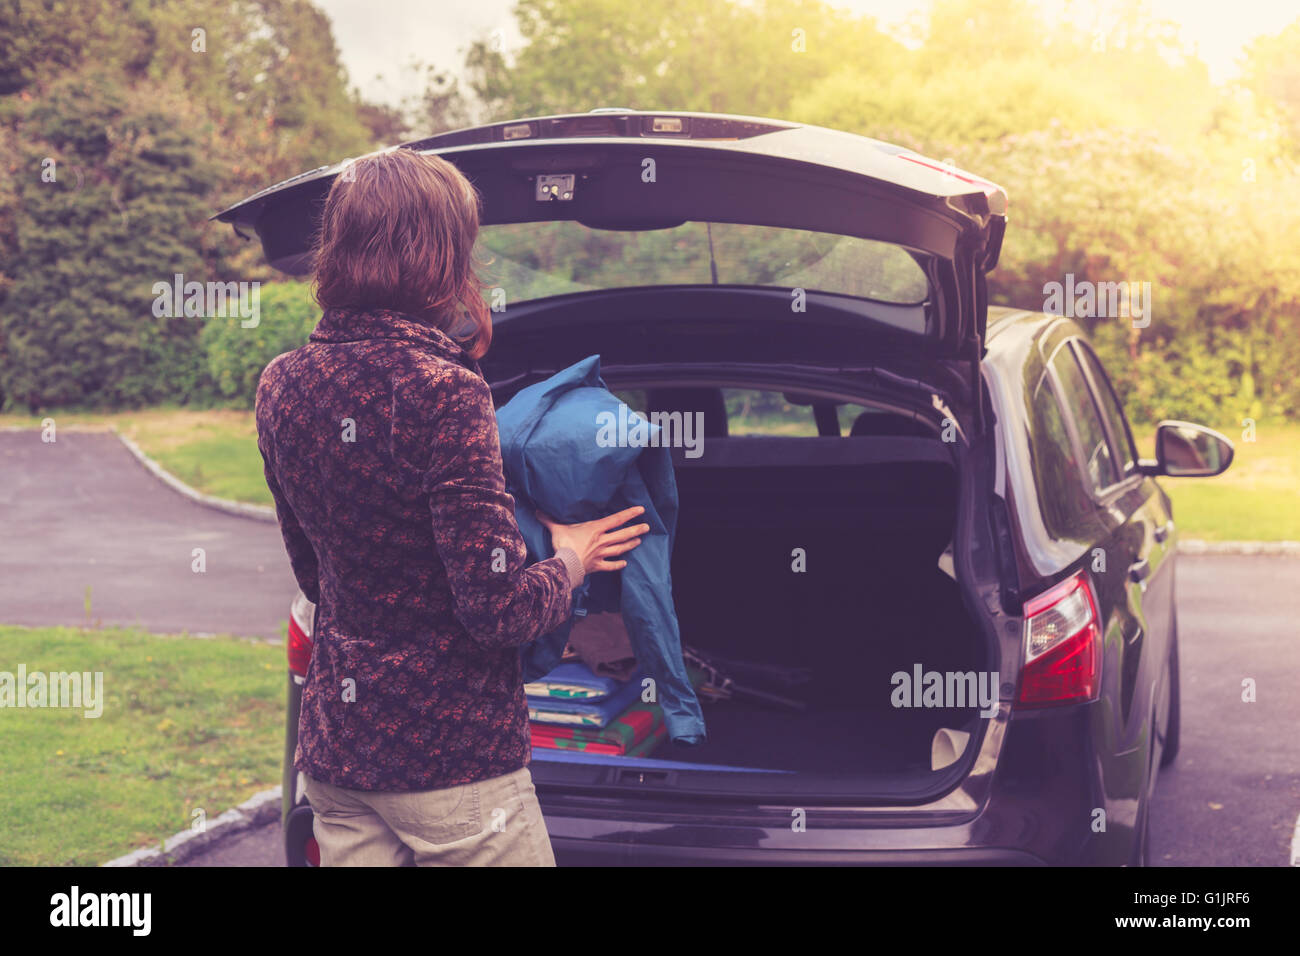 A young woman is opening the trunk of a car - Stock Image